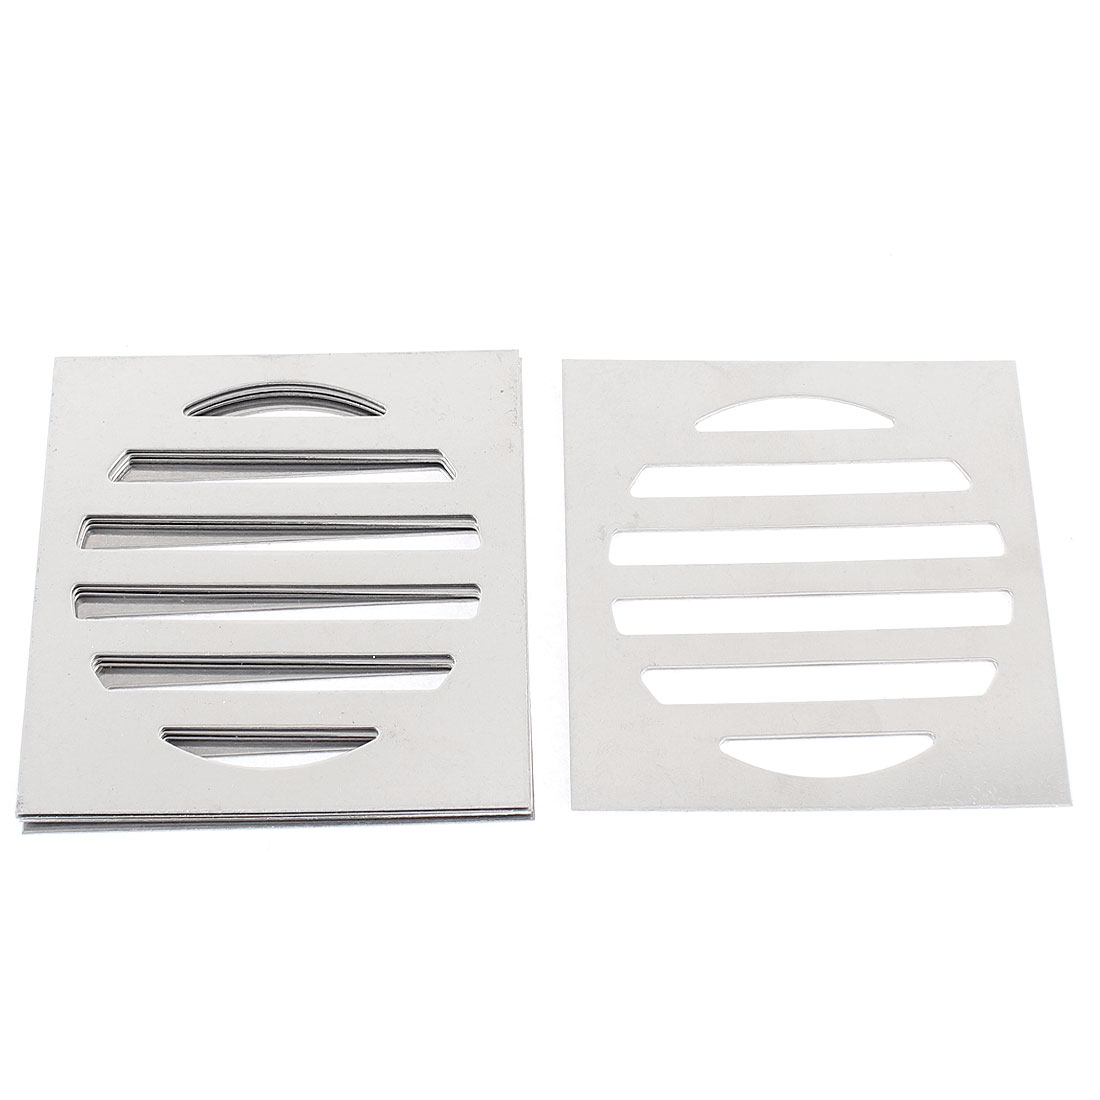 "Stainless Steel Kitchen Bathroom Square Floor Drain Cover 3"" 7.5cm 5pcs"